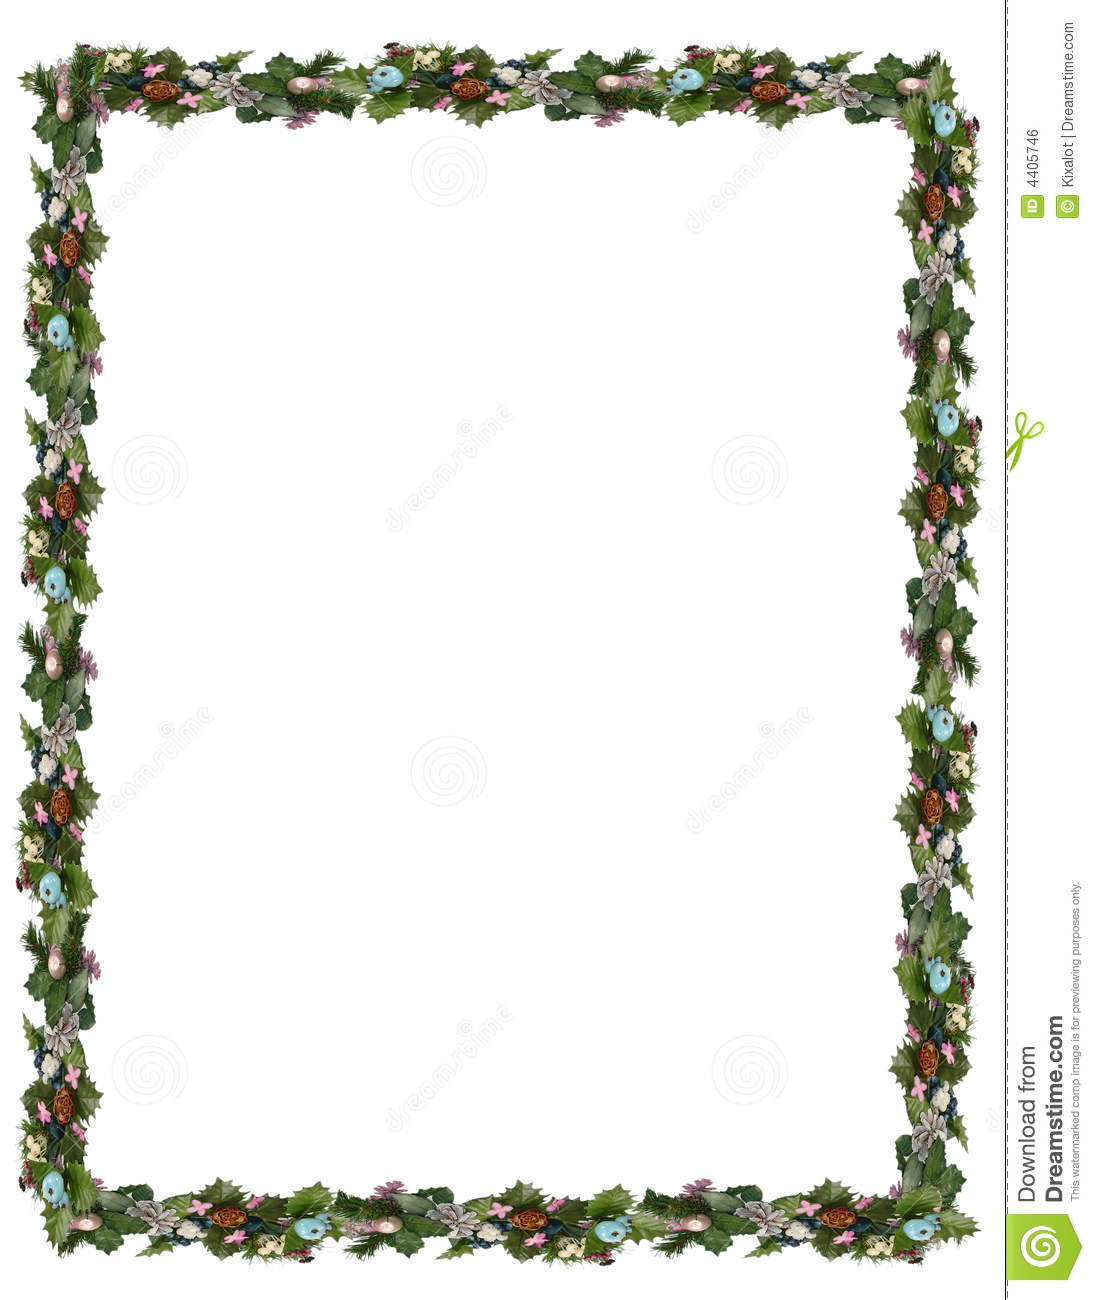 Pine Garland Clipart Free Download Best Pine Garland Clipart On